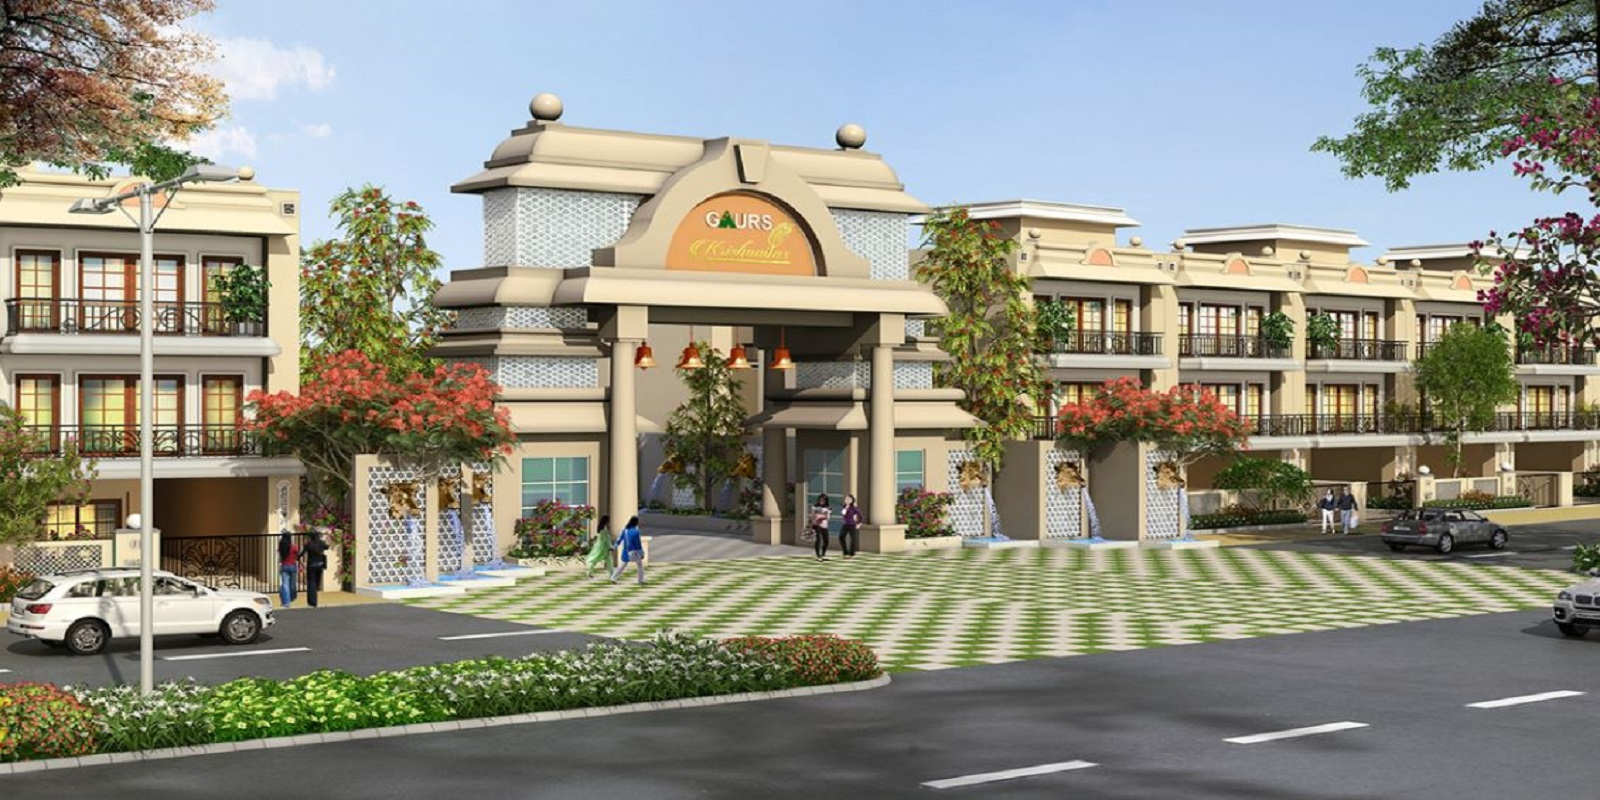 gaur krishnvilas 3rd parkview villas project large image2